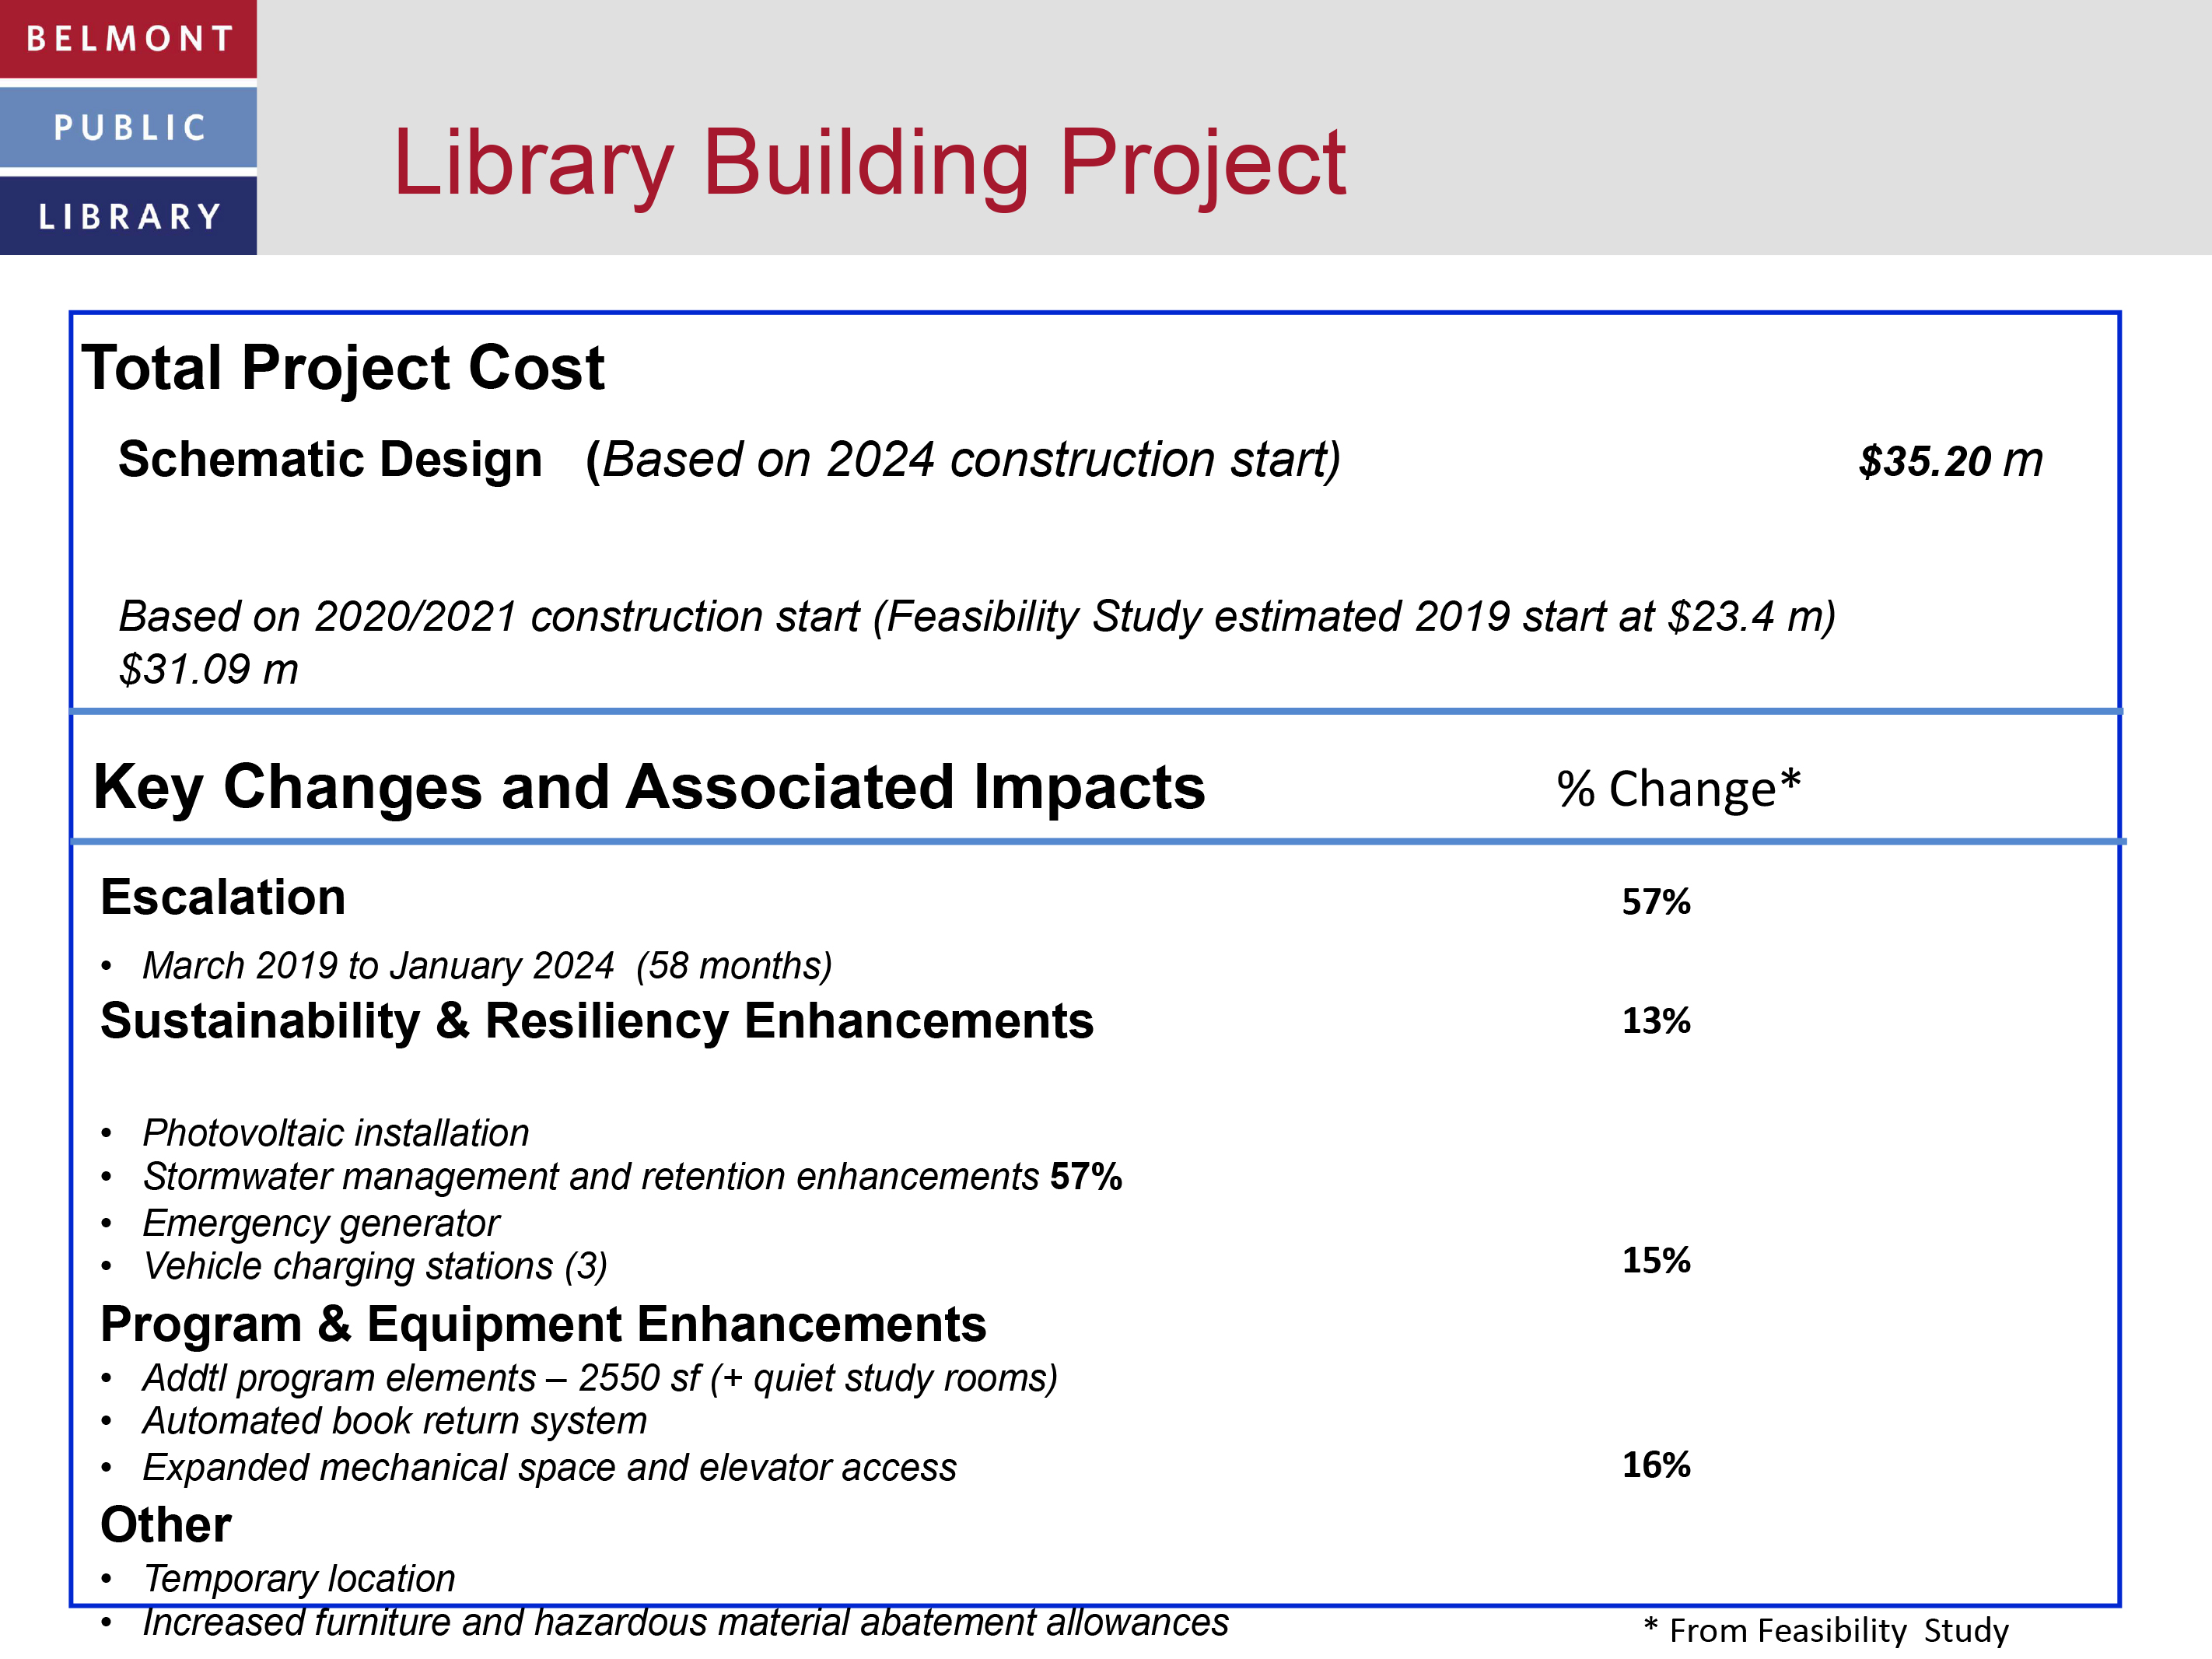 Library Building Project Costs